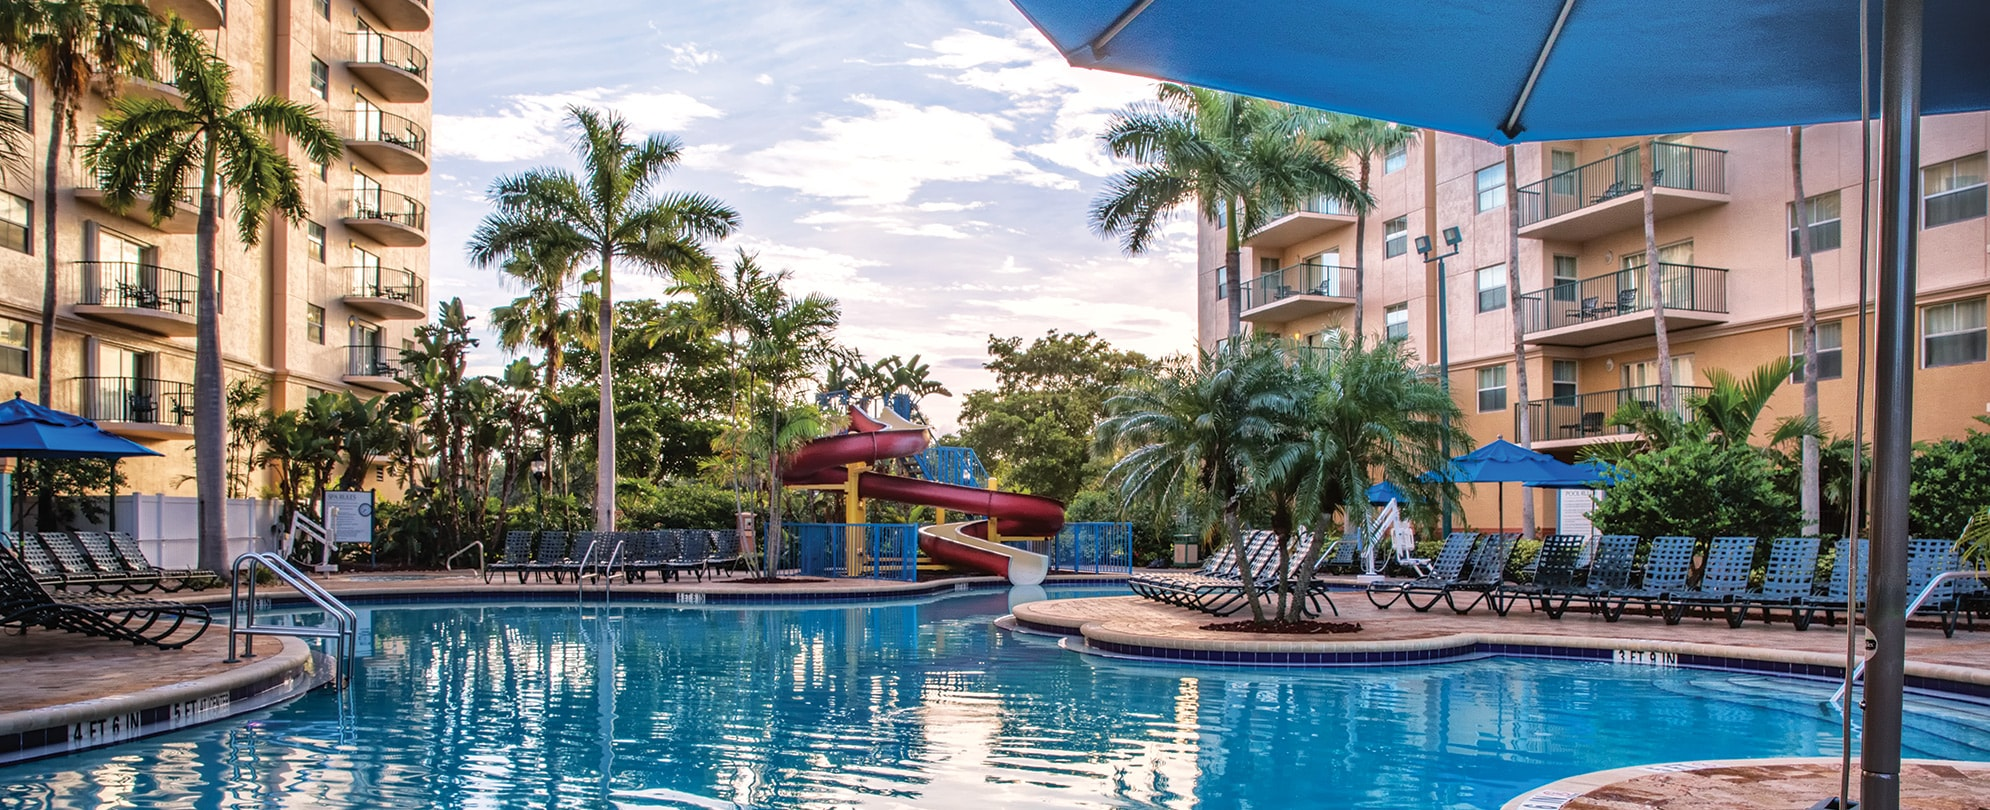 Timeshares In Fort Lauderdale Florida